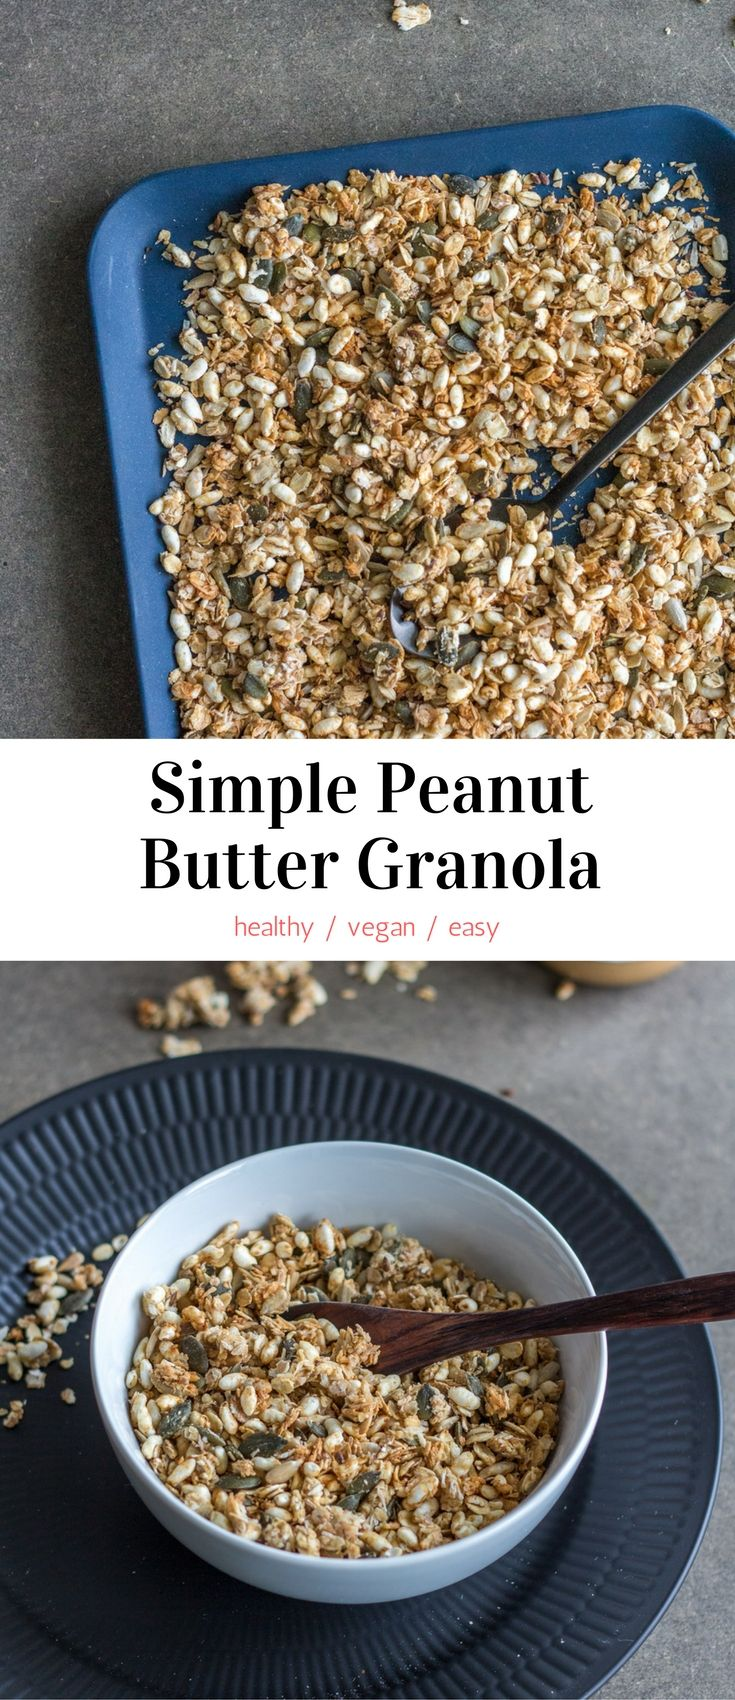 This Simple Peanut Butter Granola is the perfect make-ahead breakfast or snack. Easy and quick, customizable, healthy, and delicious. #vegan #snacks #breakfast #healthy #recipes